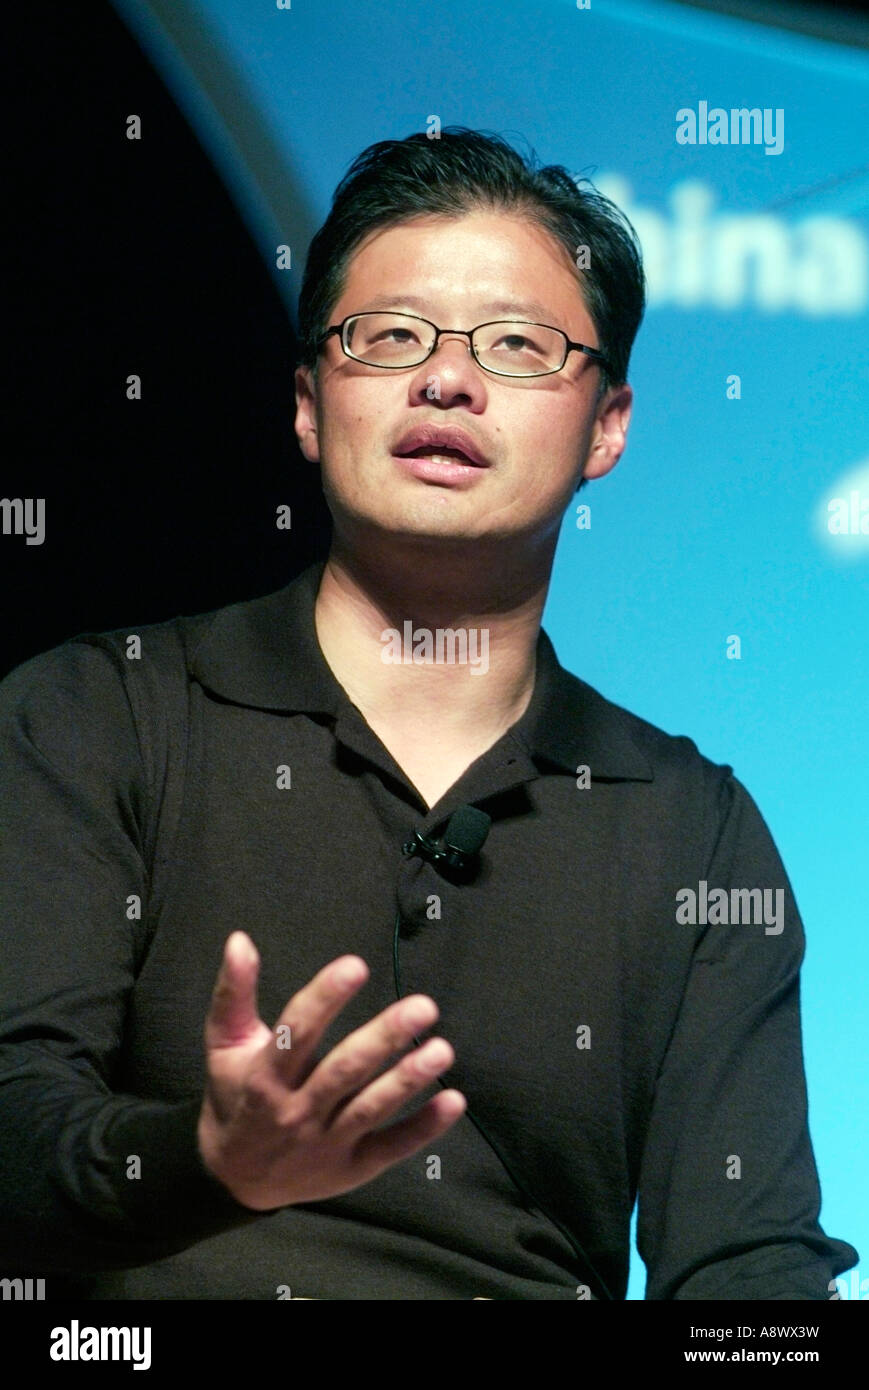 Jerry Yang Co-Founder and Chief Executive Officer of Yahoo! Inc. during a speech in Silicon Valley CA  Photo by - Stock Image